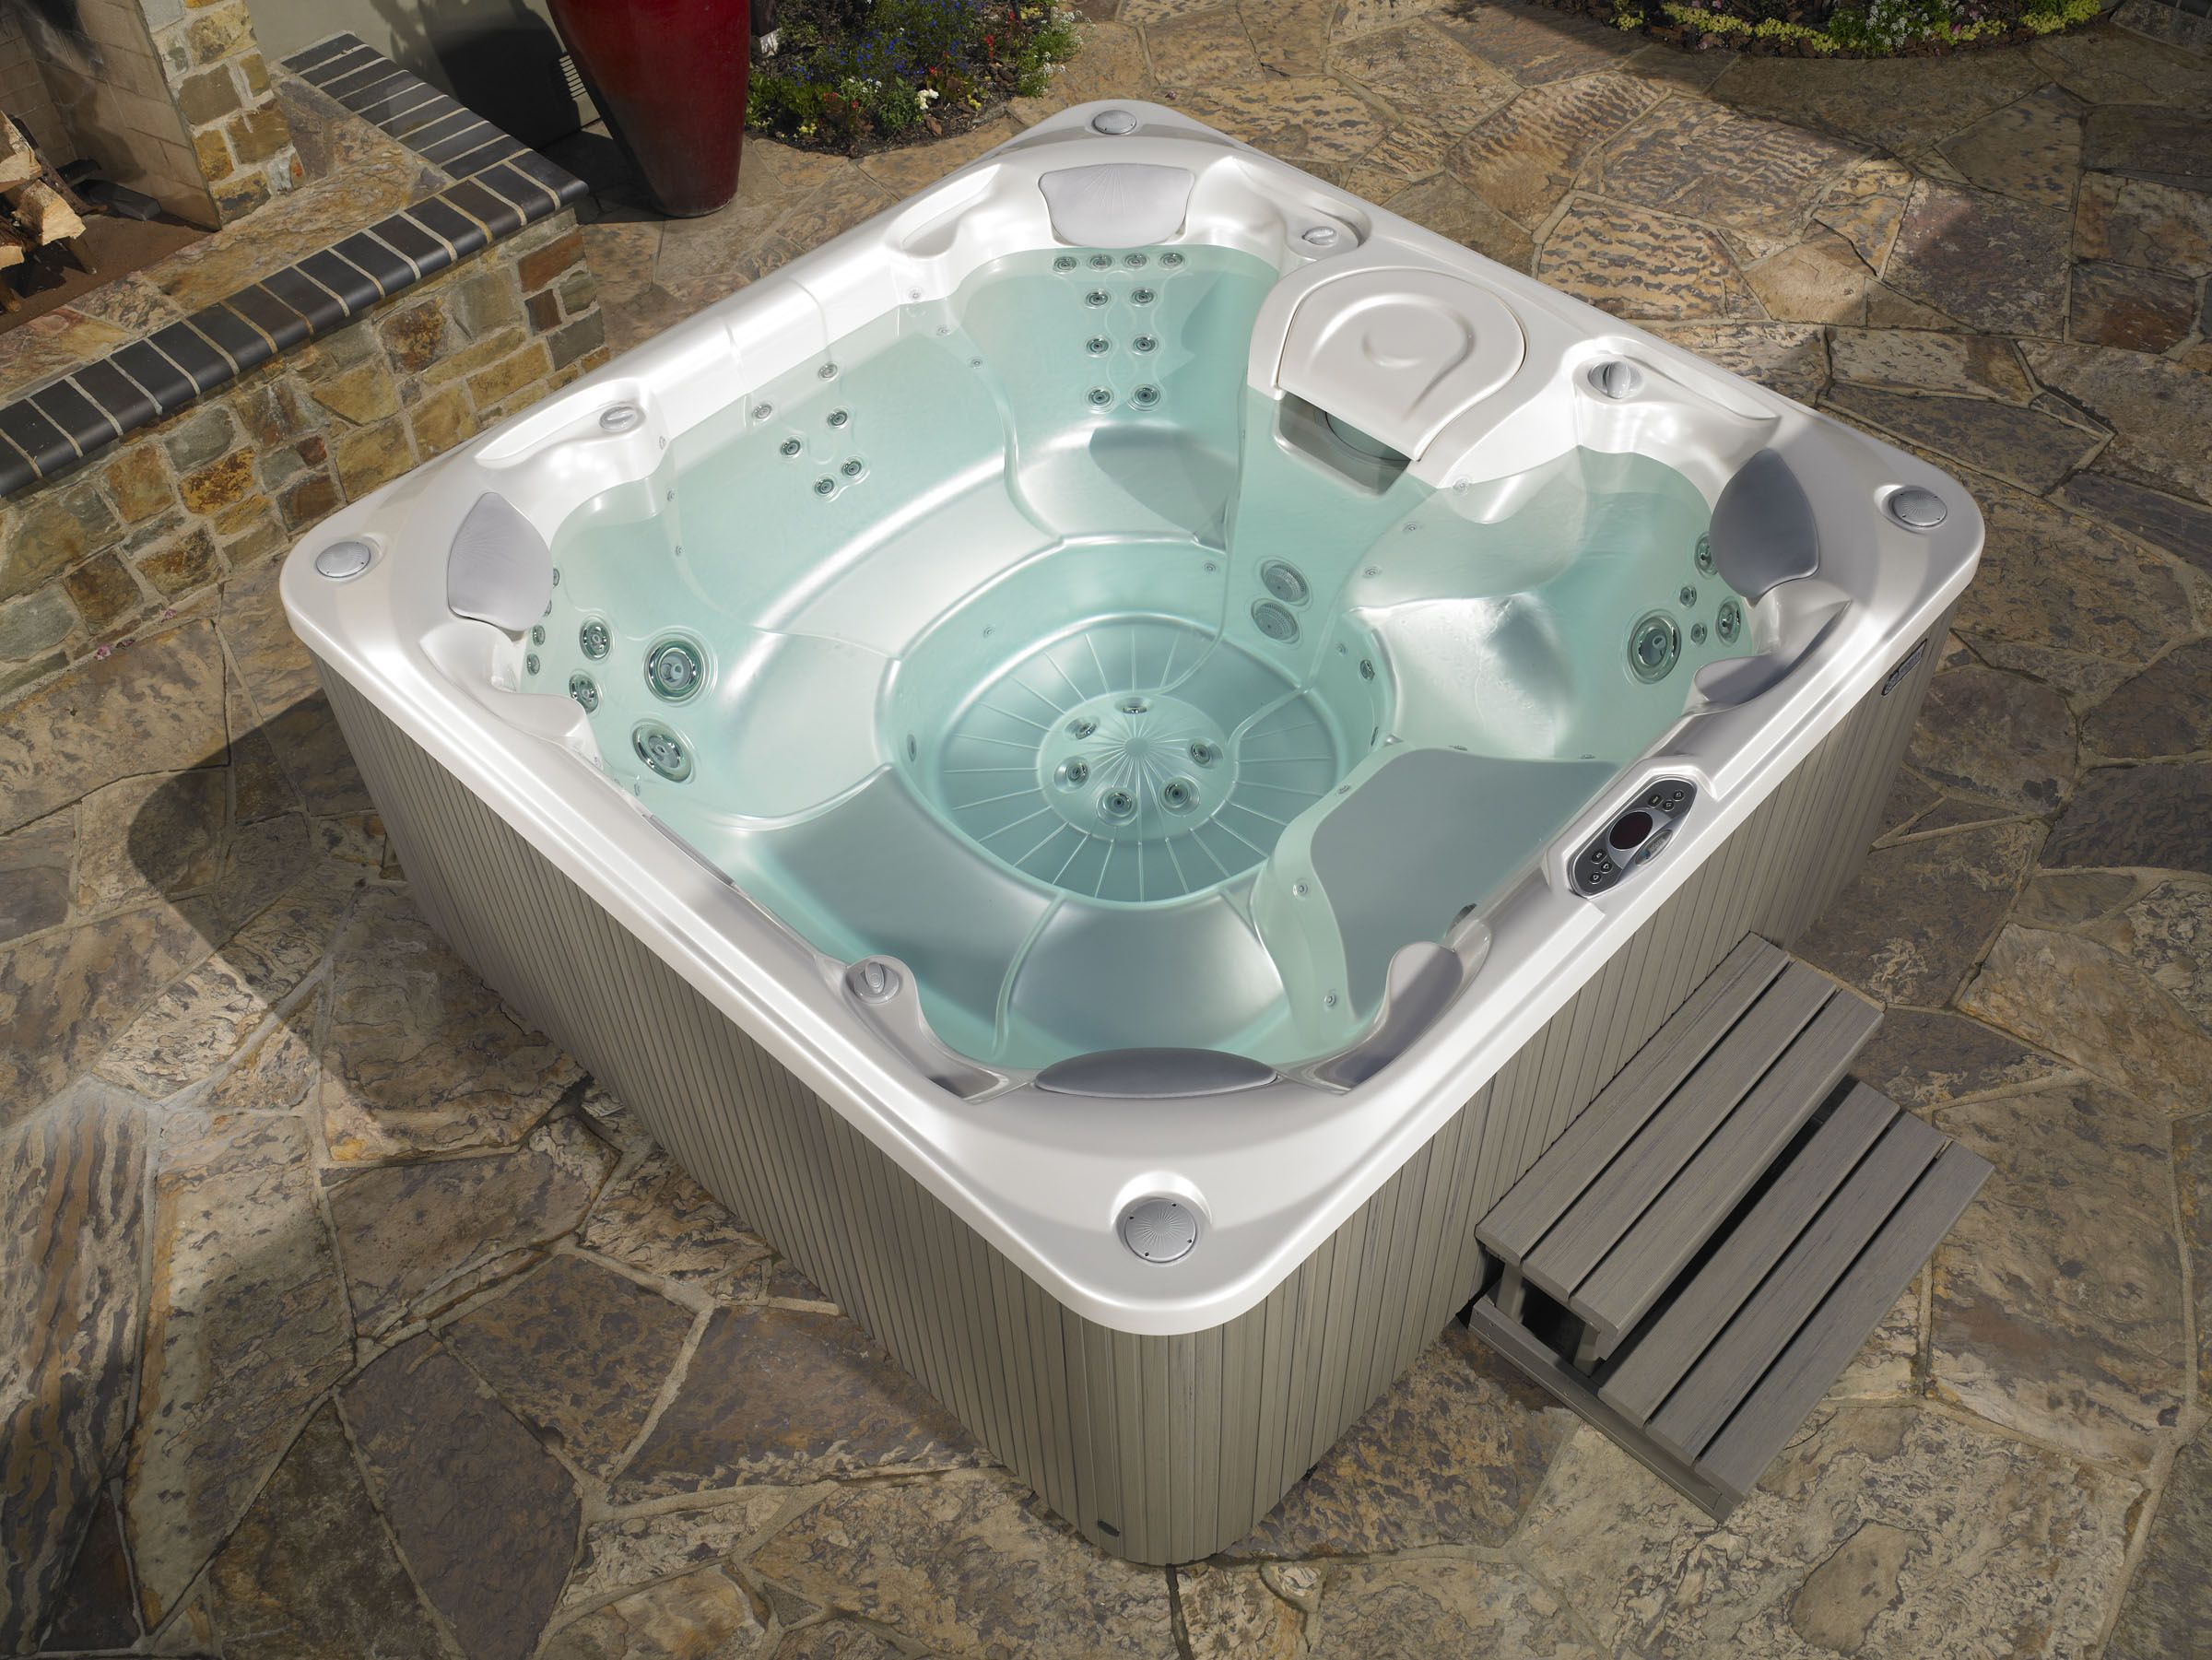 Pulse Limelight Hot Tubs Pioneer Family Pools Hot Tub Expensive Hot Tubs Hot Tub Swim Spa